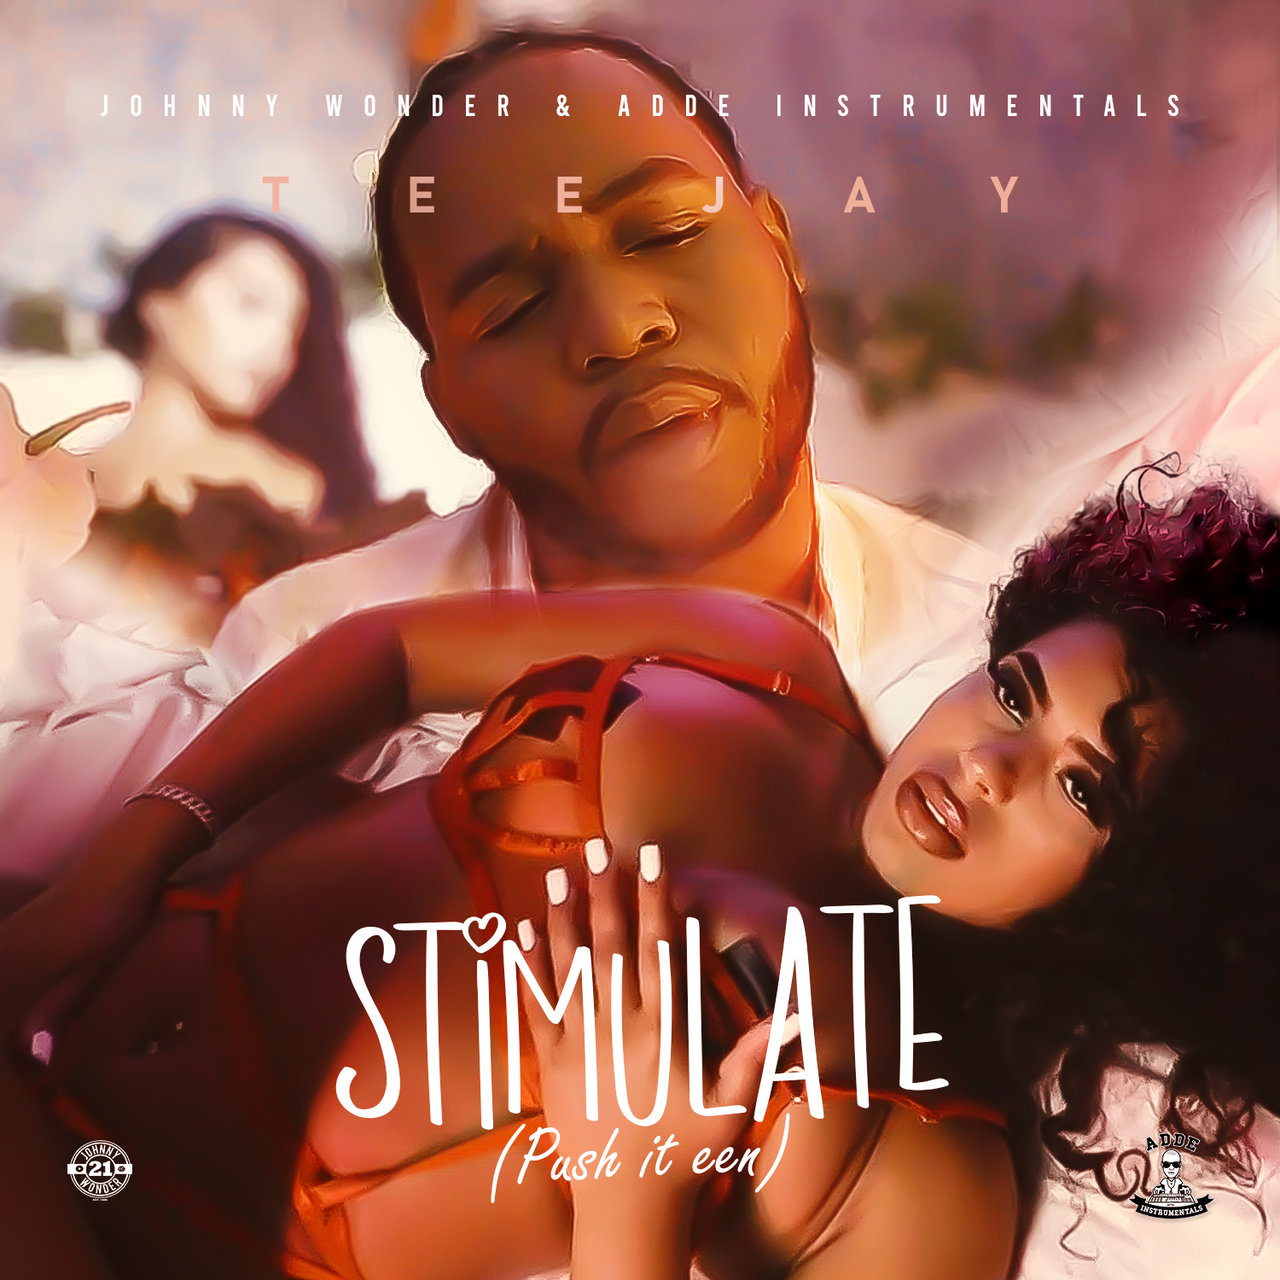 Teejay - Stimulate (Push It Een) (Cover)